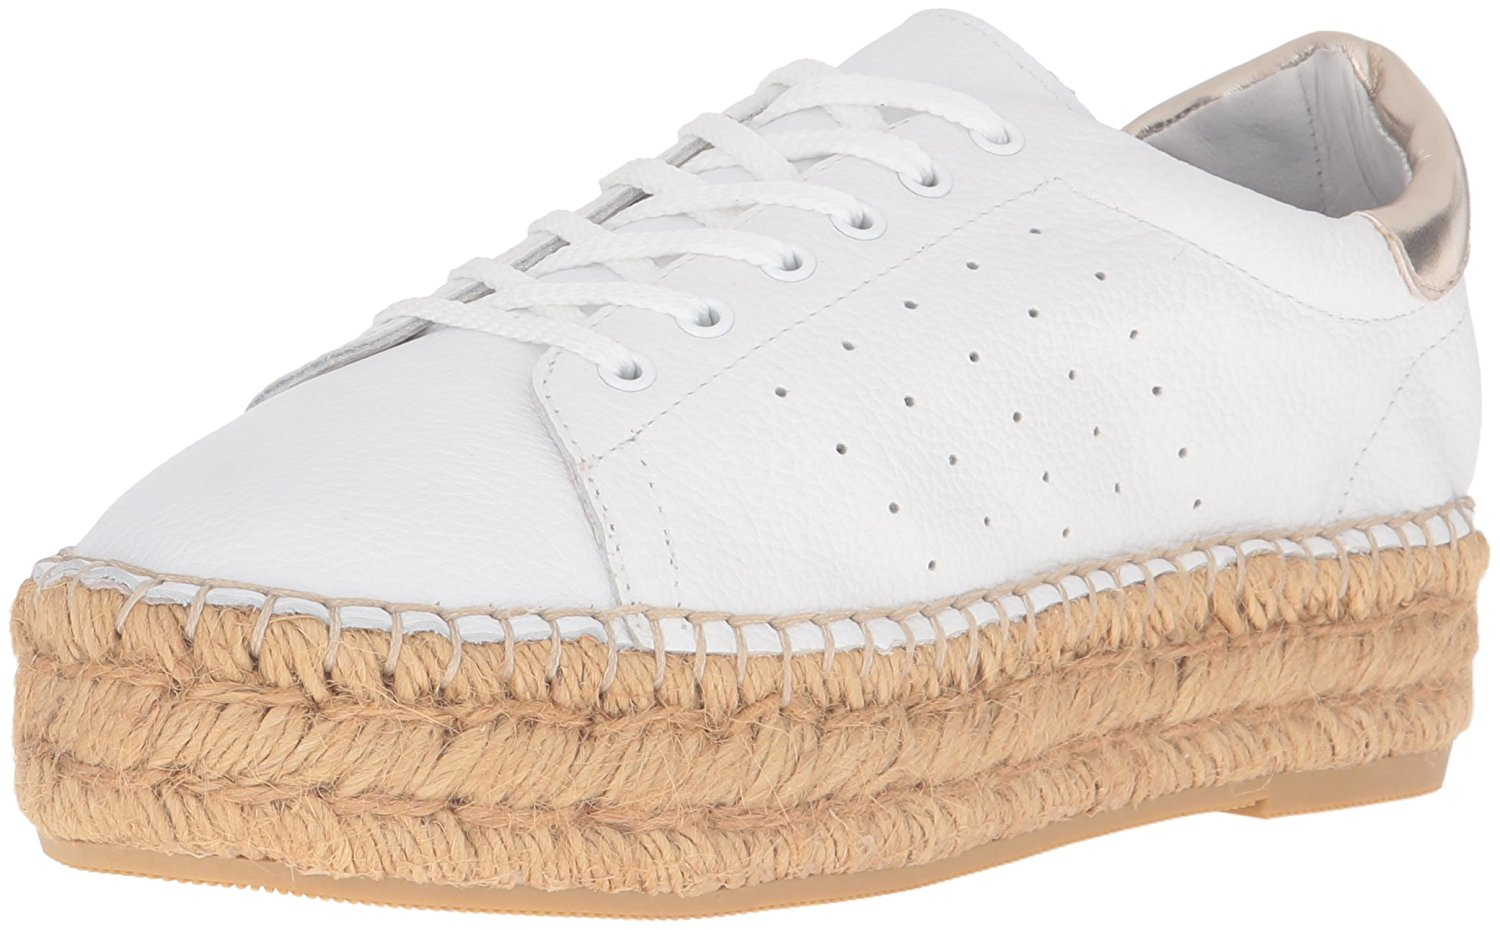 3b8f395a6ae Steven by Steve Madden Pace Womens Fashion Sneakers White 9.5 US ...